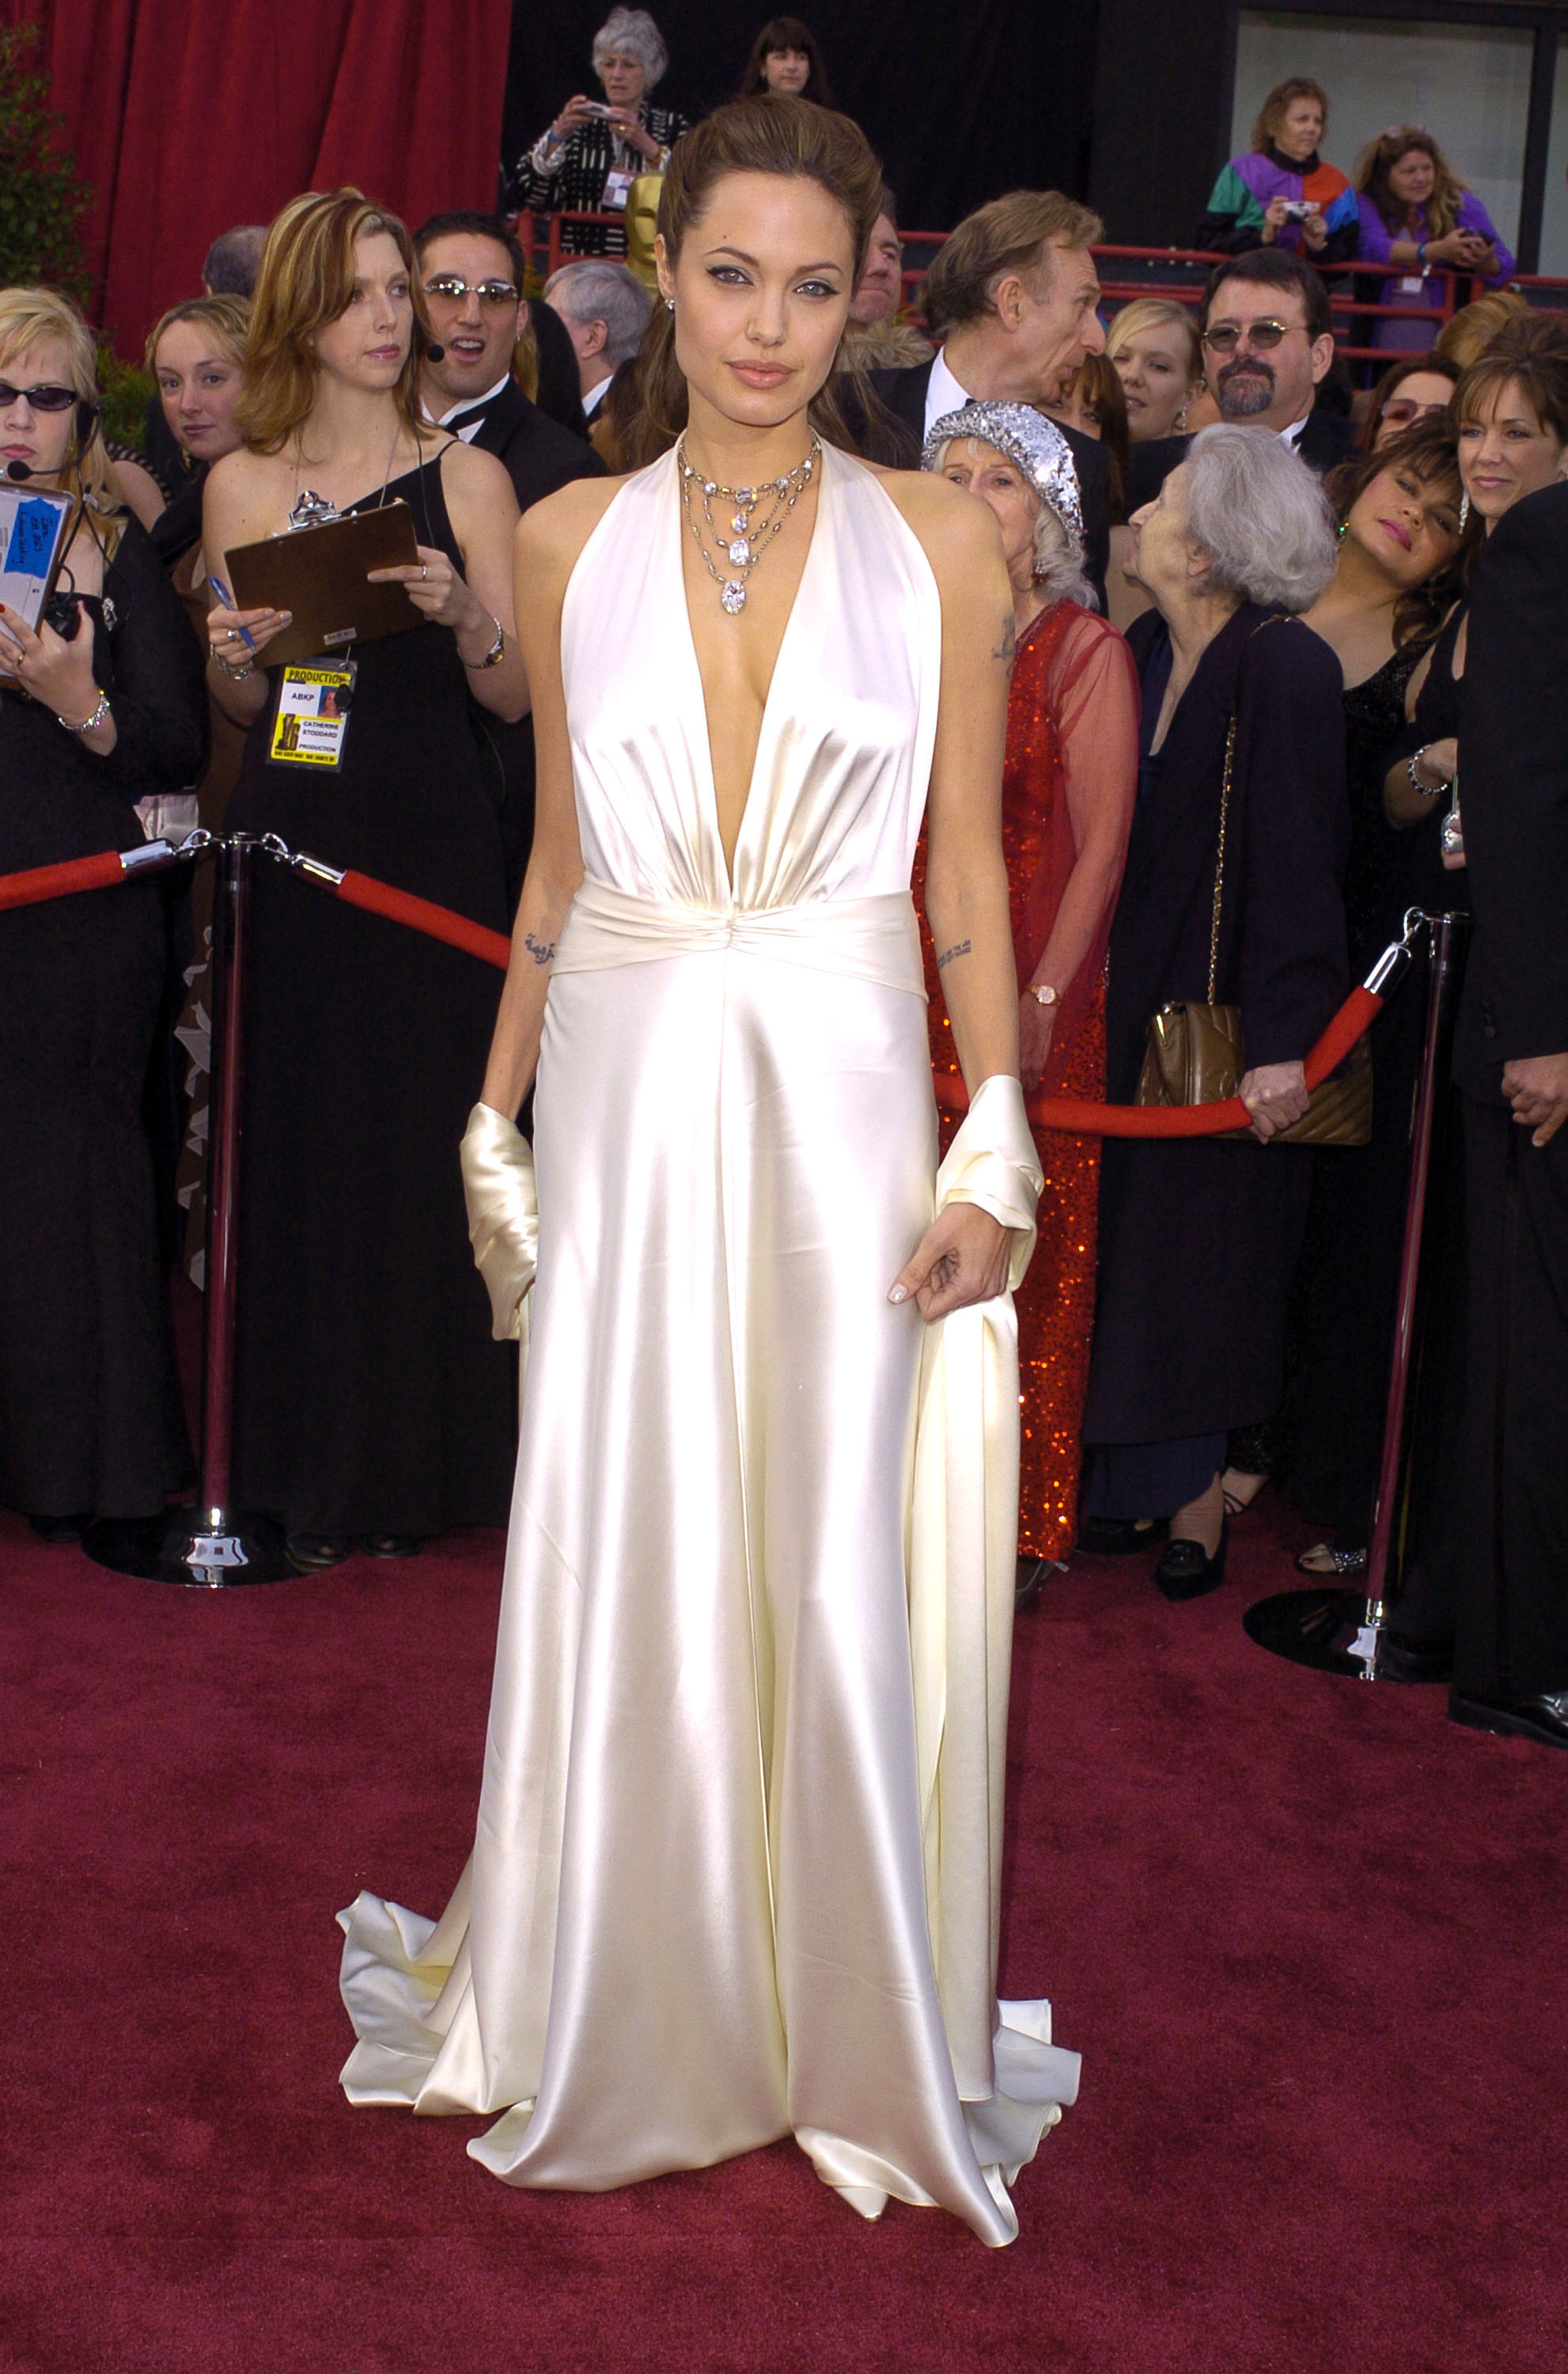 angelina jolie posing on the red carpet in a white silk dress